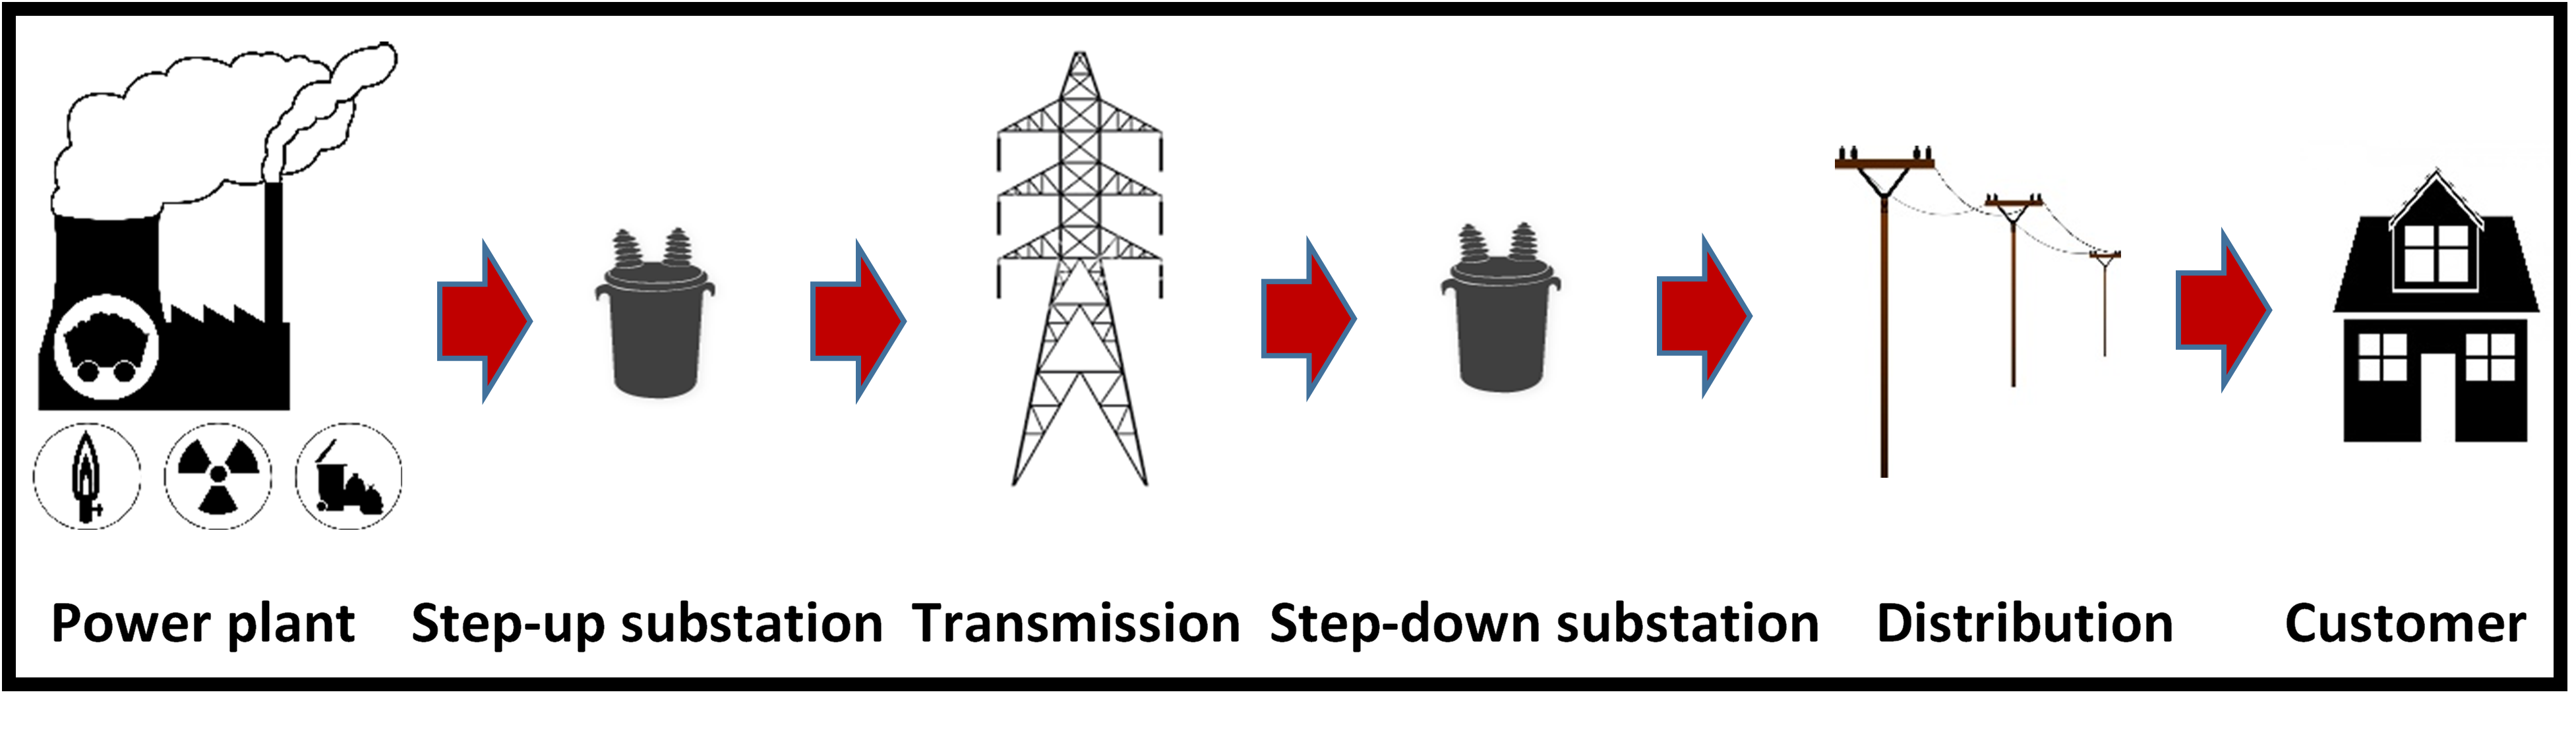 centralized electricity system